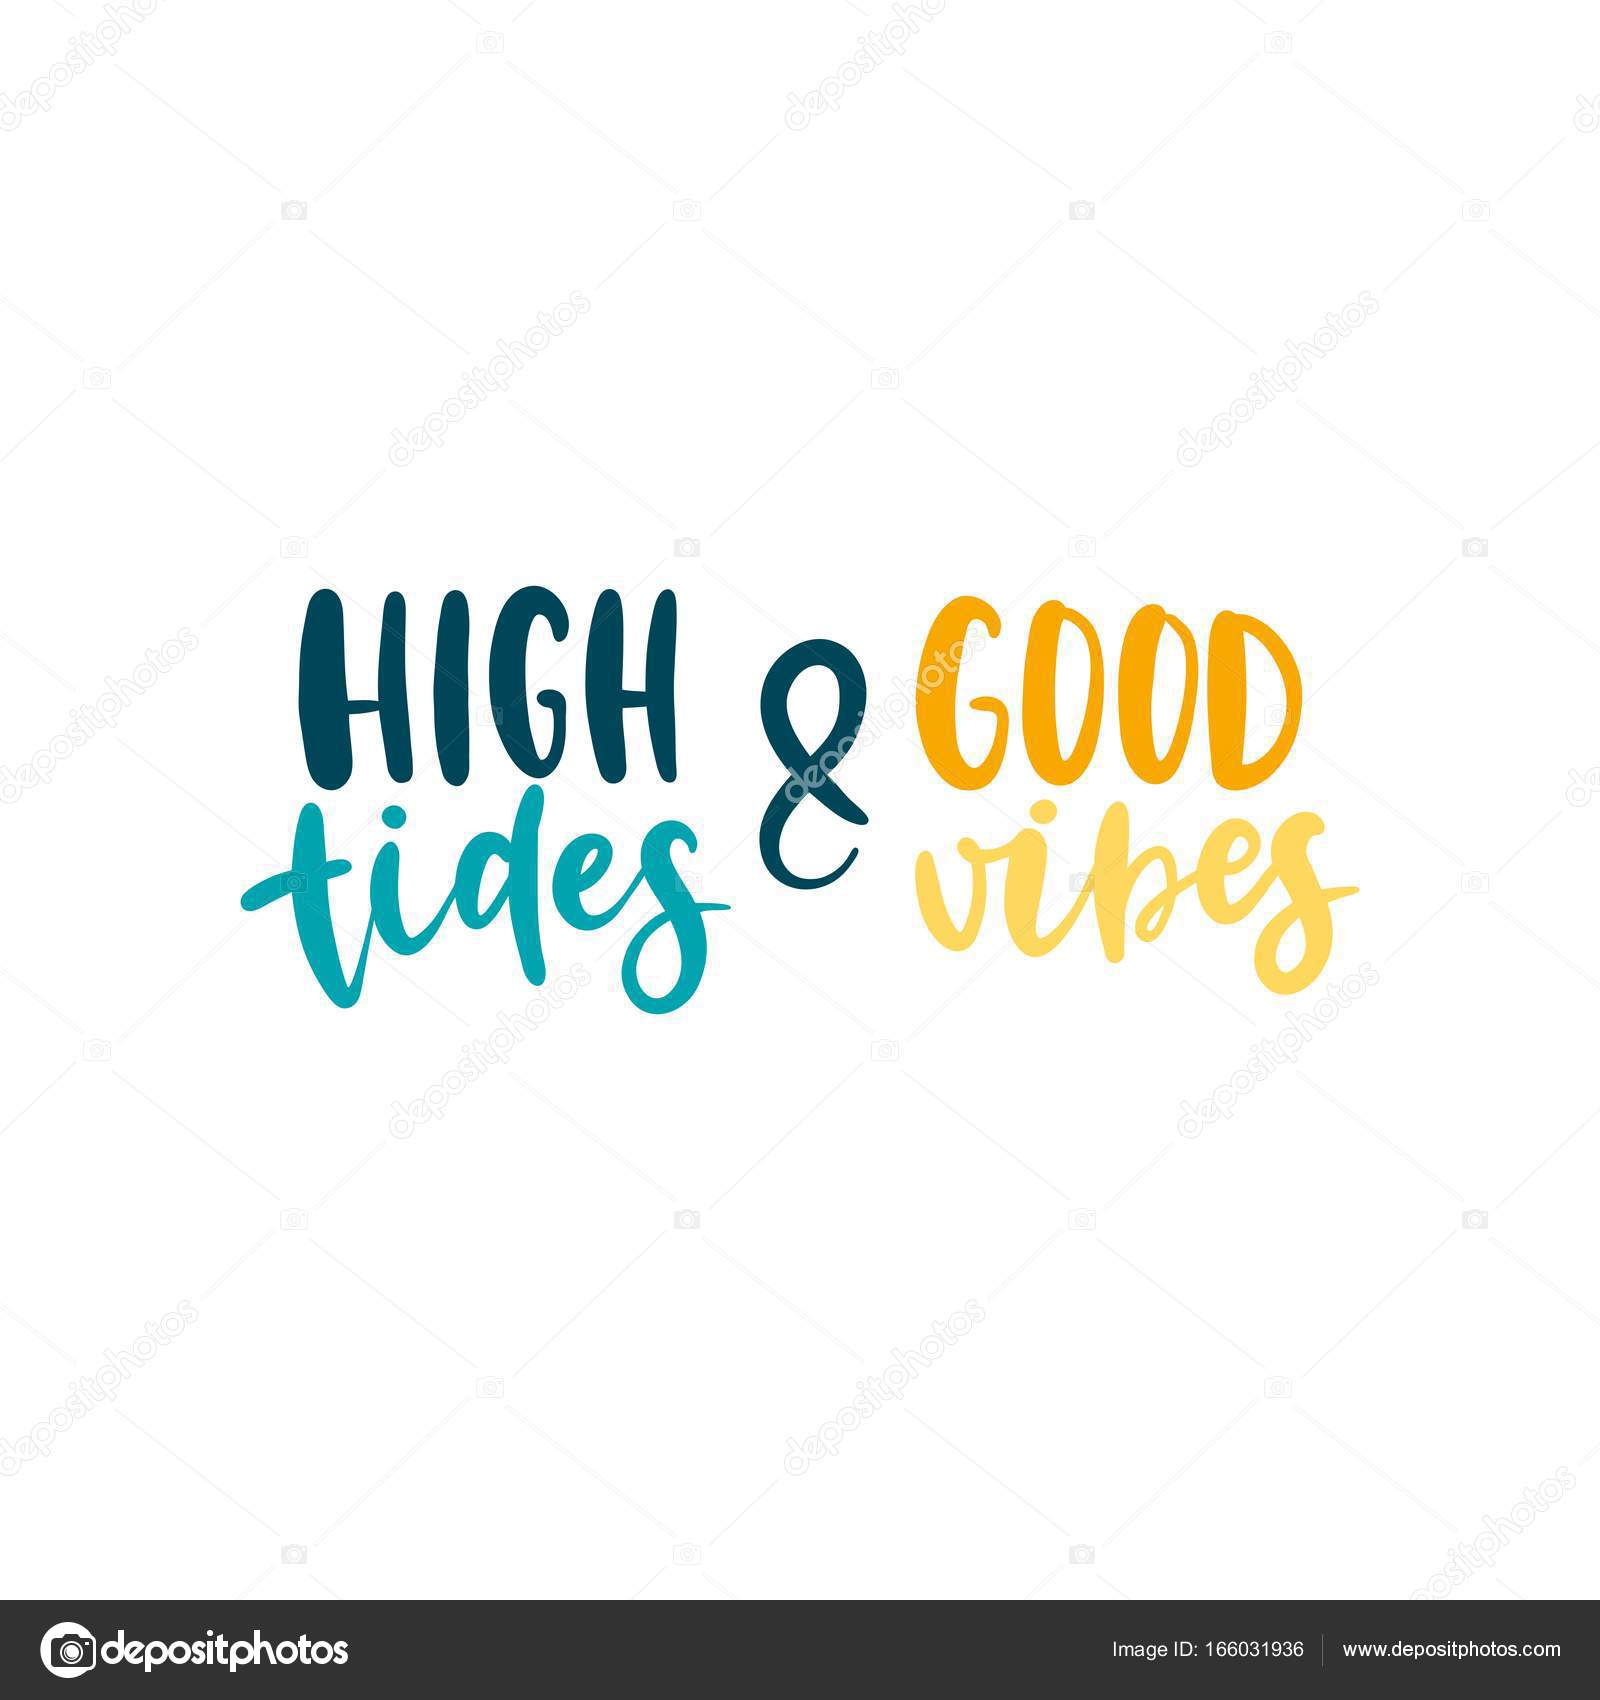 High tides and good vibes stock vector wewhitelist 166031936 high tides and good vibes stock vector biocorpaavc